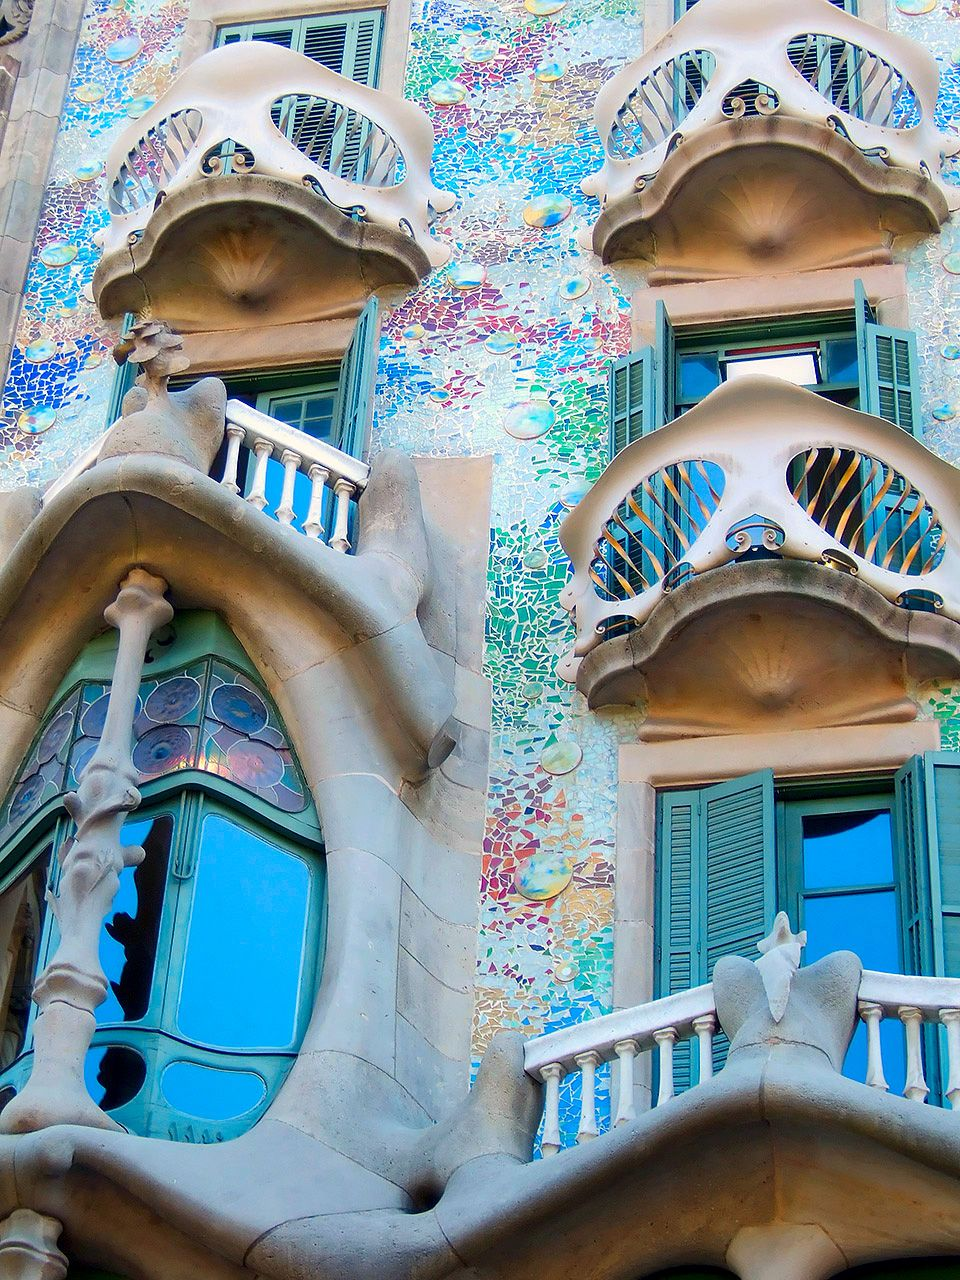 gaudi - one of the best places to see! Barcelona!! :)